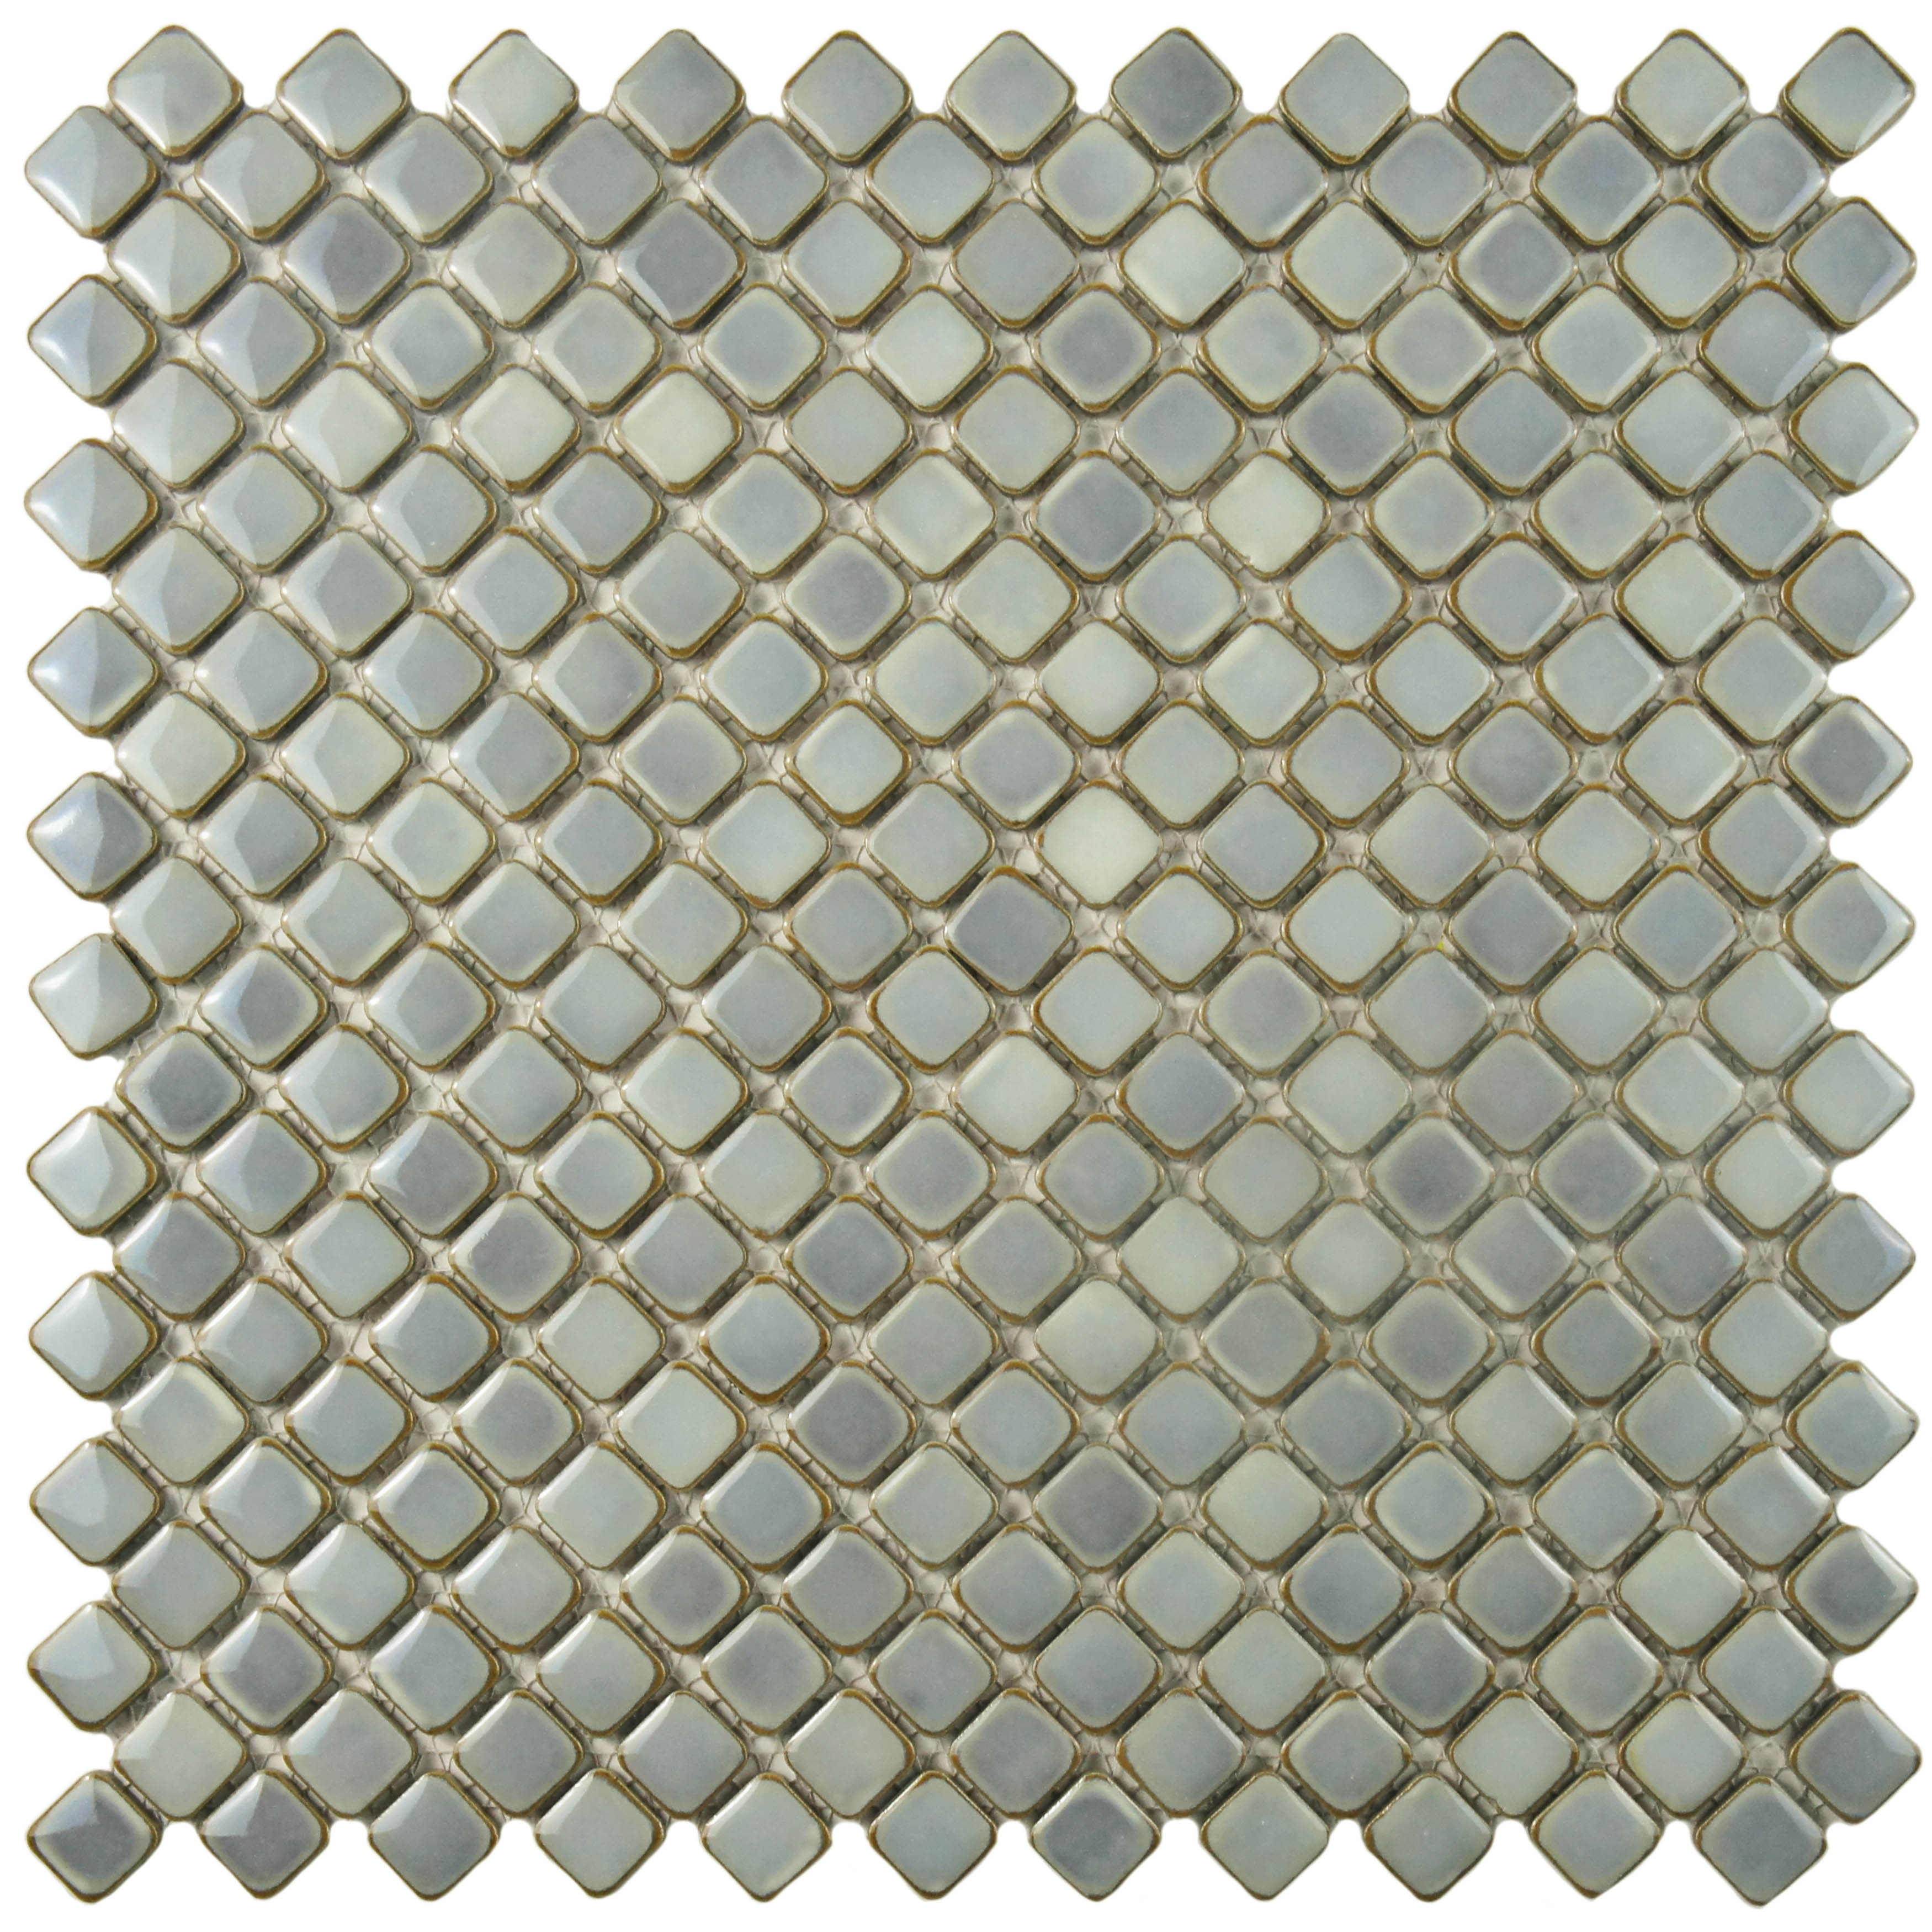 SomerTile 13x13-inch Jewel Grey Eye Porcelain Mosaic Floor and Wall Tile (Case of 10)